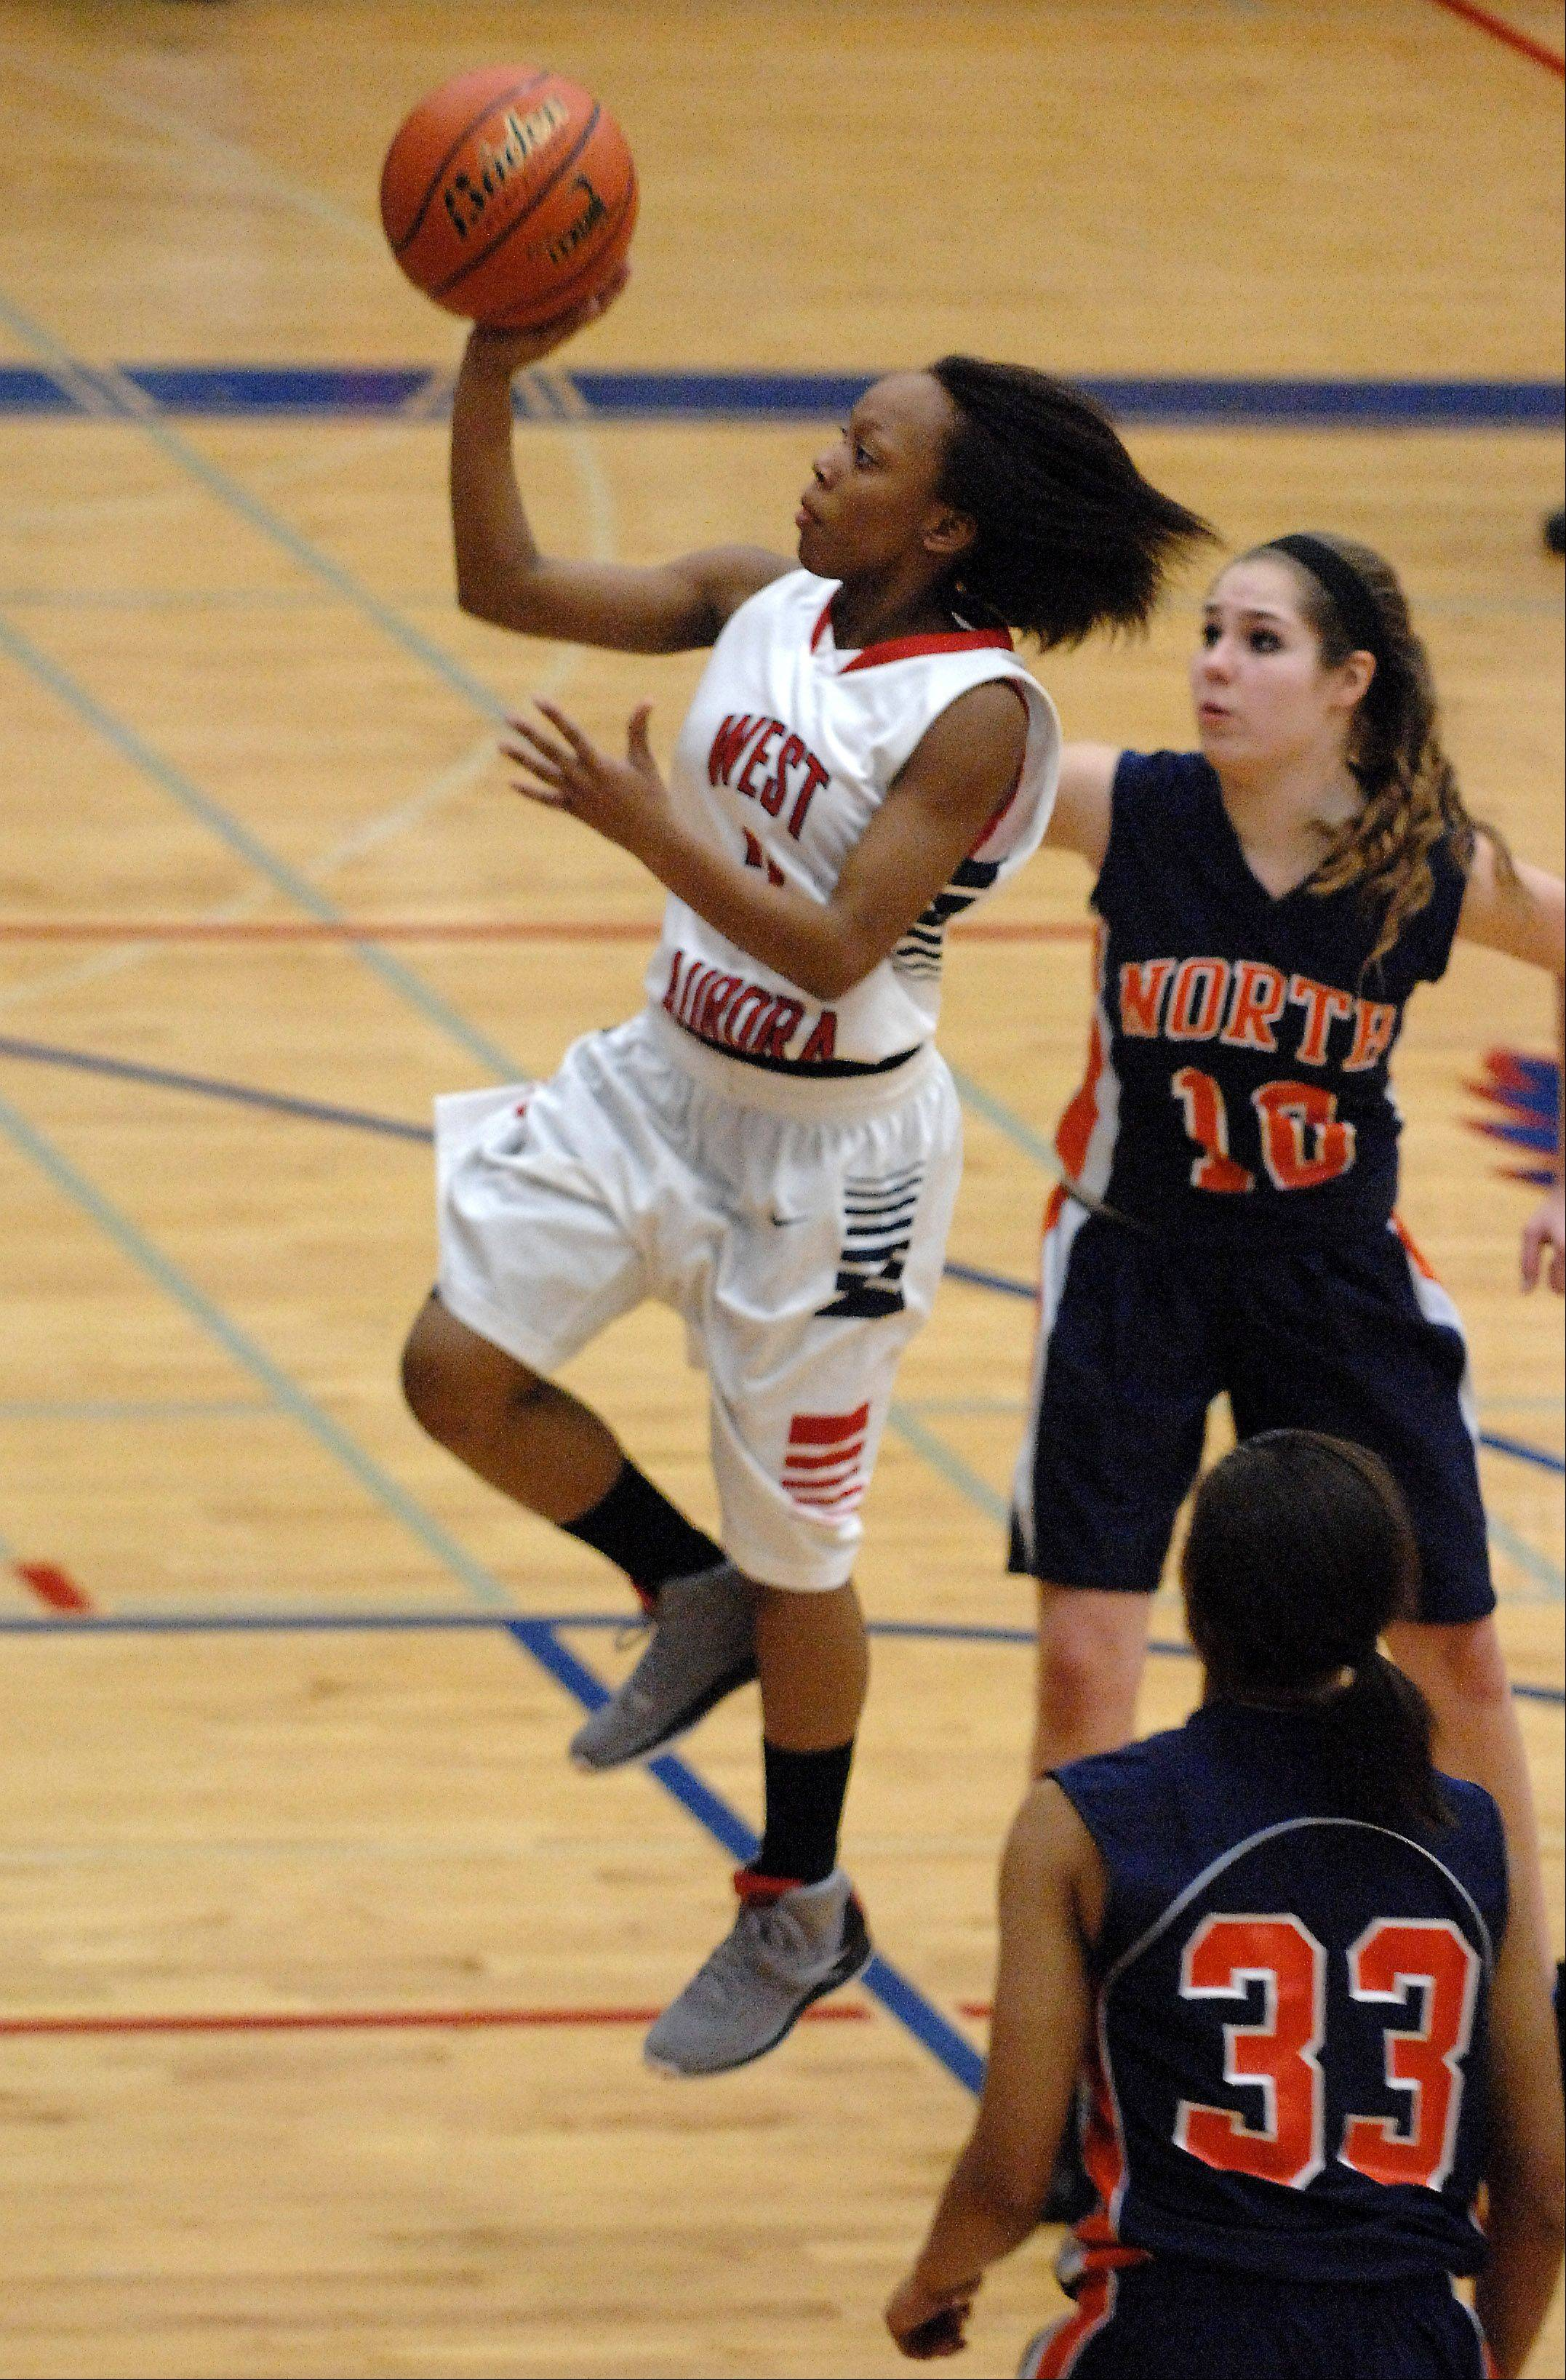 West Aurora's Alexis Wiggins pulls up with a running one-hander against Naperville North.